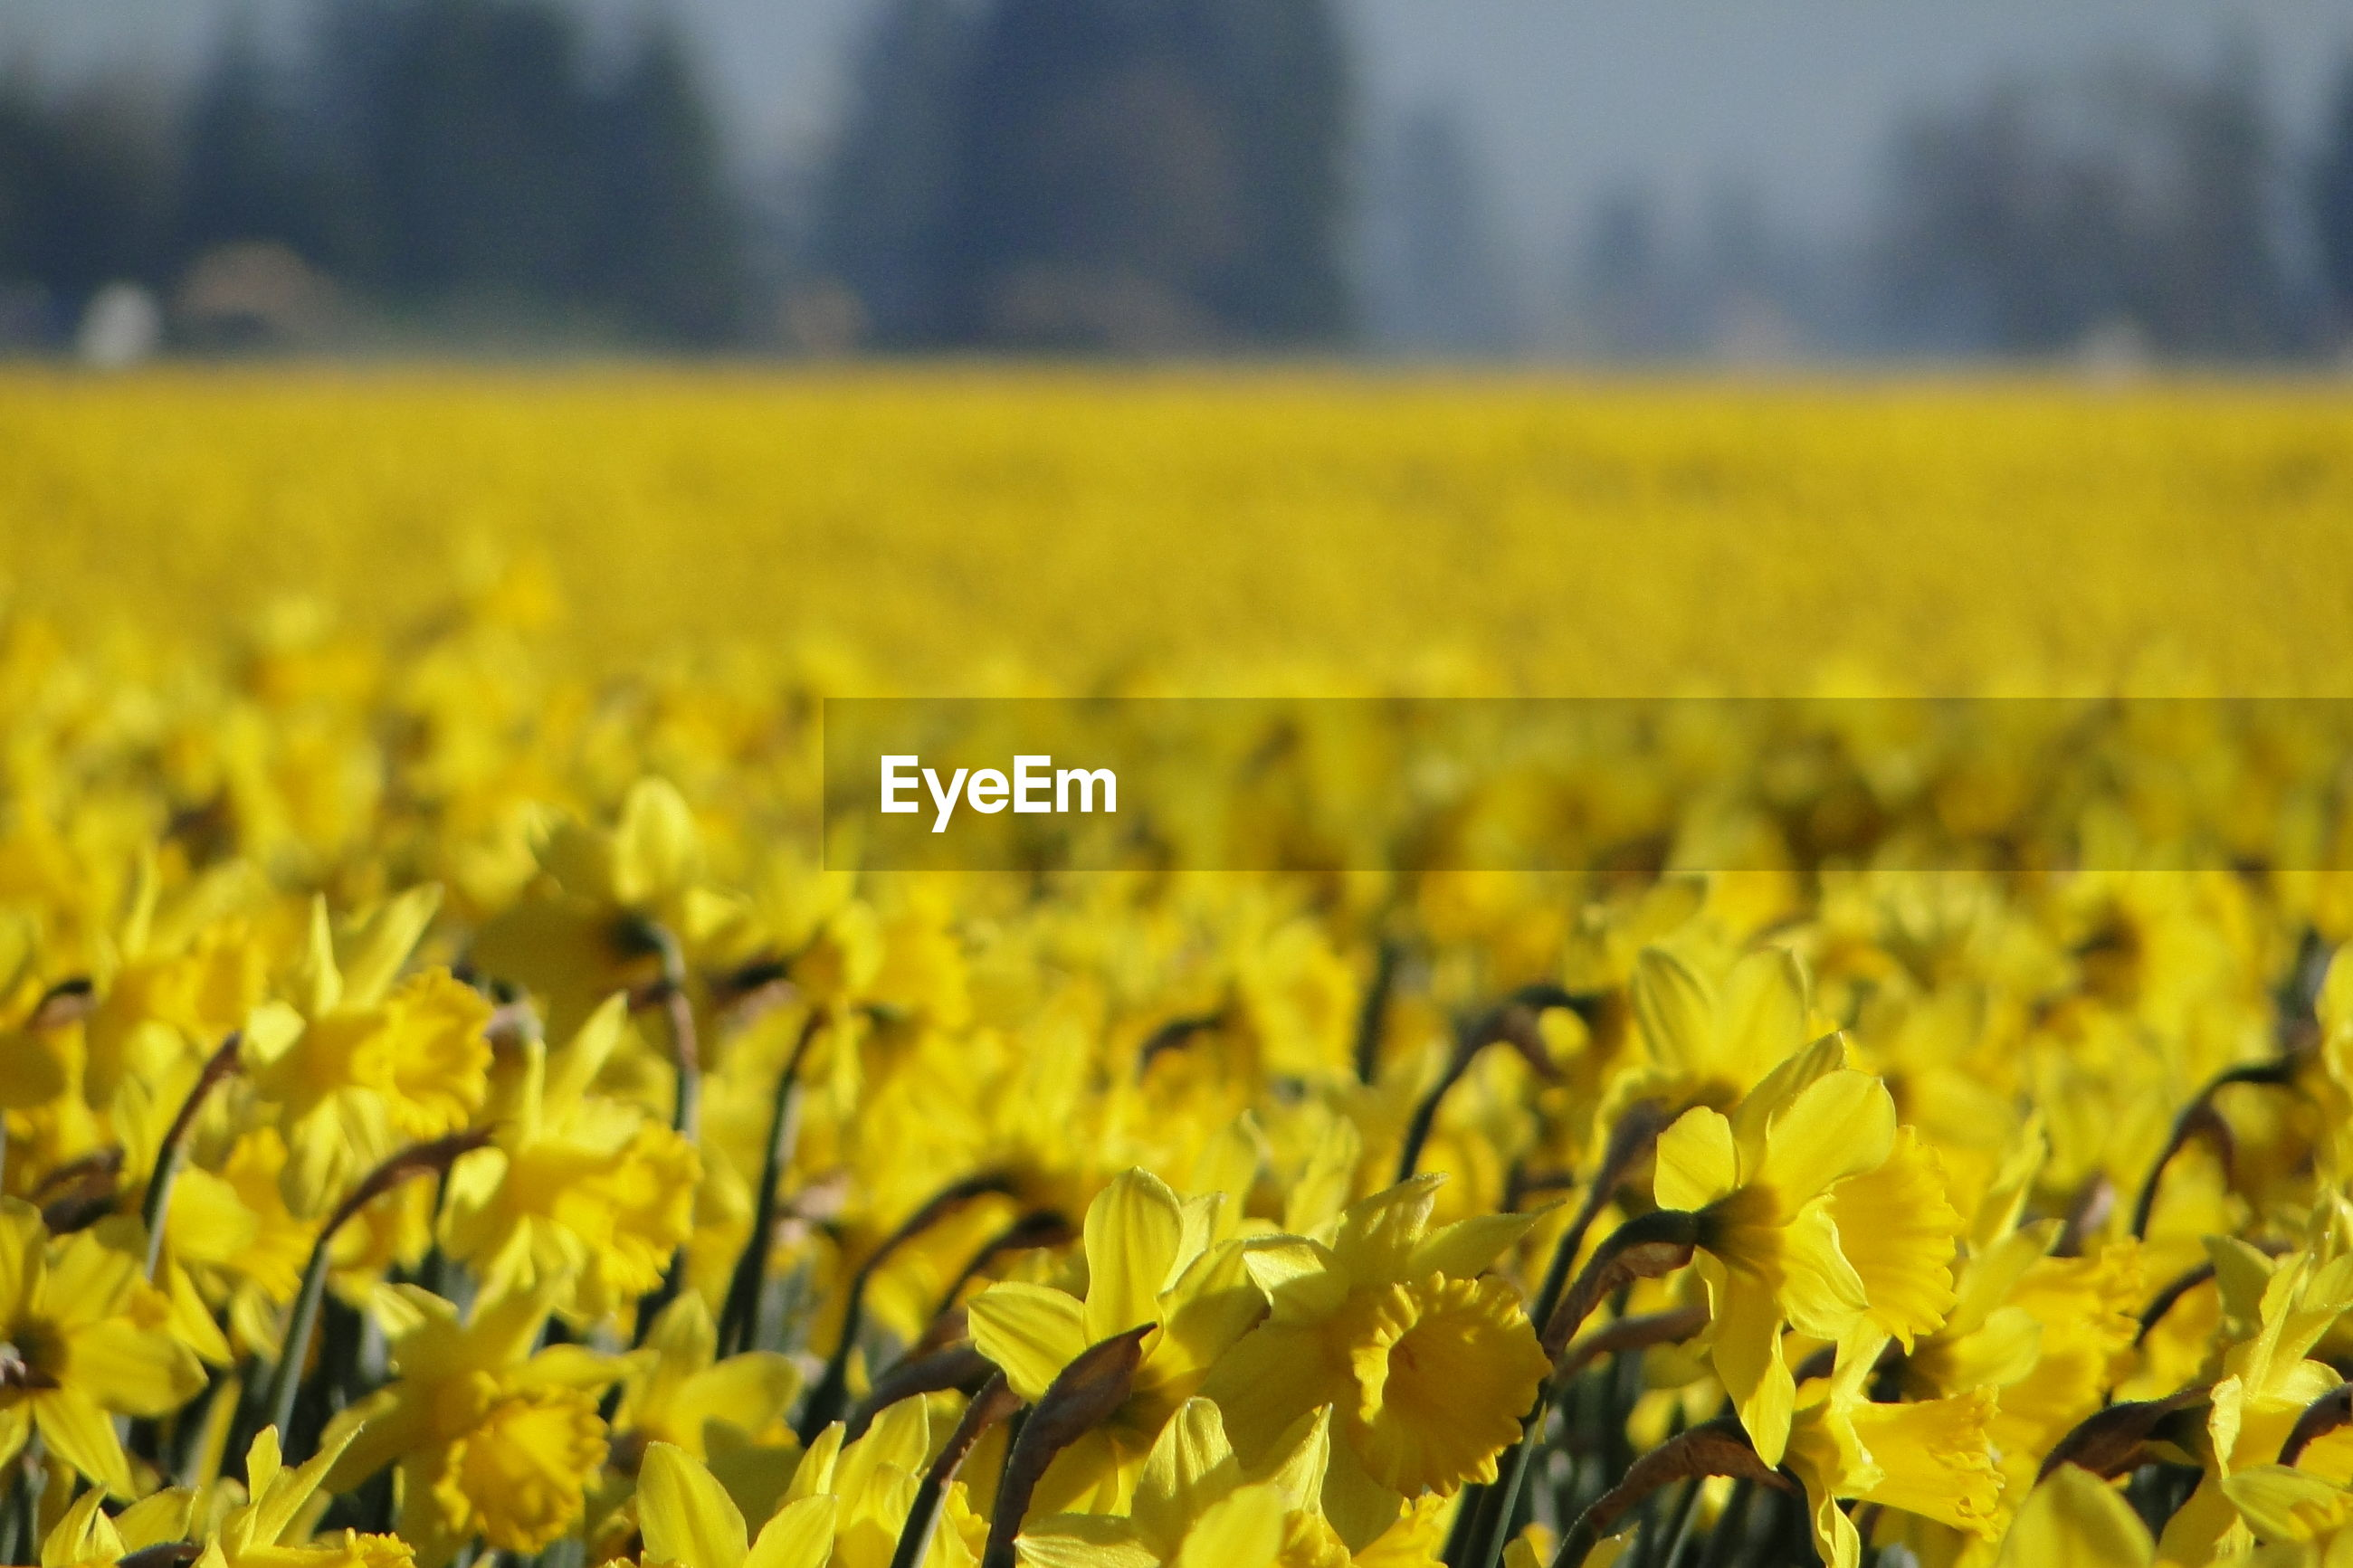 VIEW OF YELLOW FLOWERING PLANTS ON FIELD